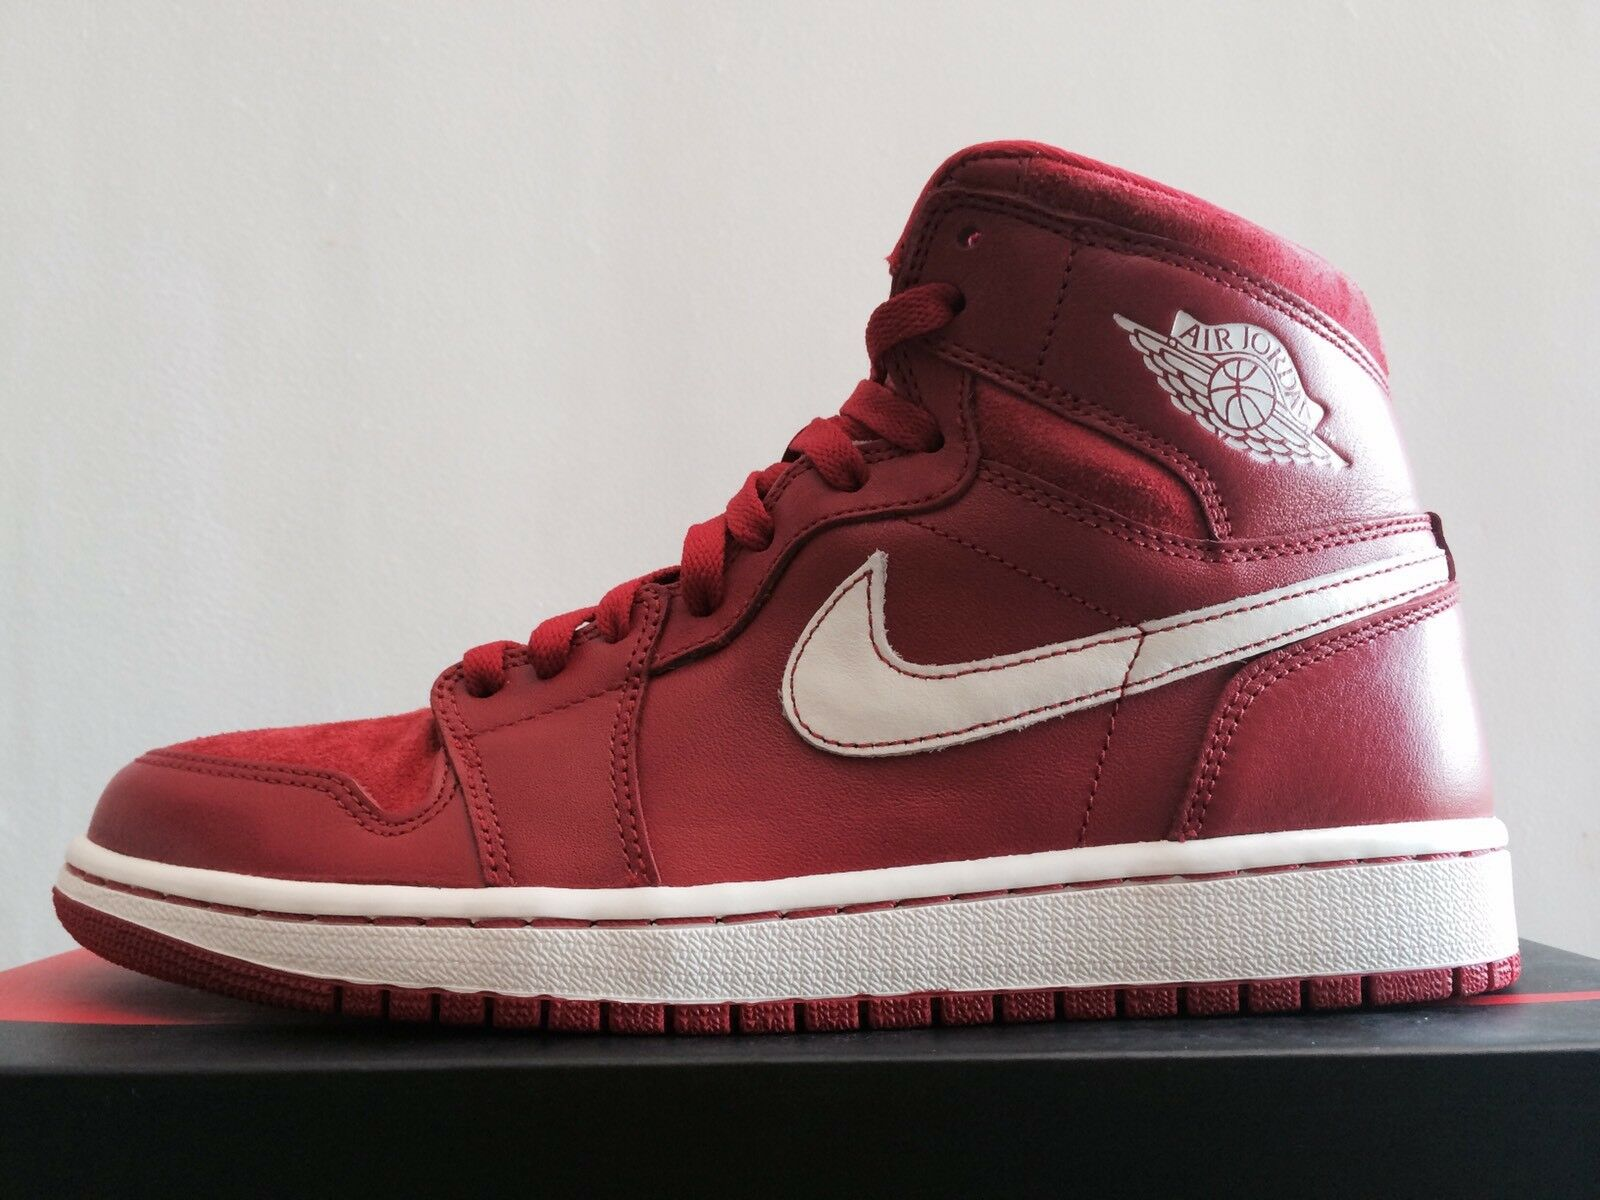 2018 NIKE AIR JORDAN 1 OG RETRO HI Price reduction The latest discount shoes for men and women